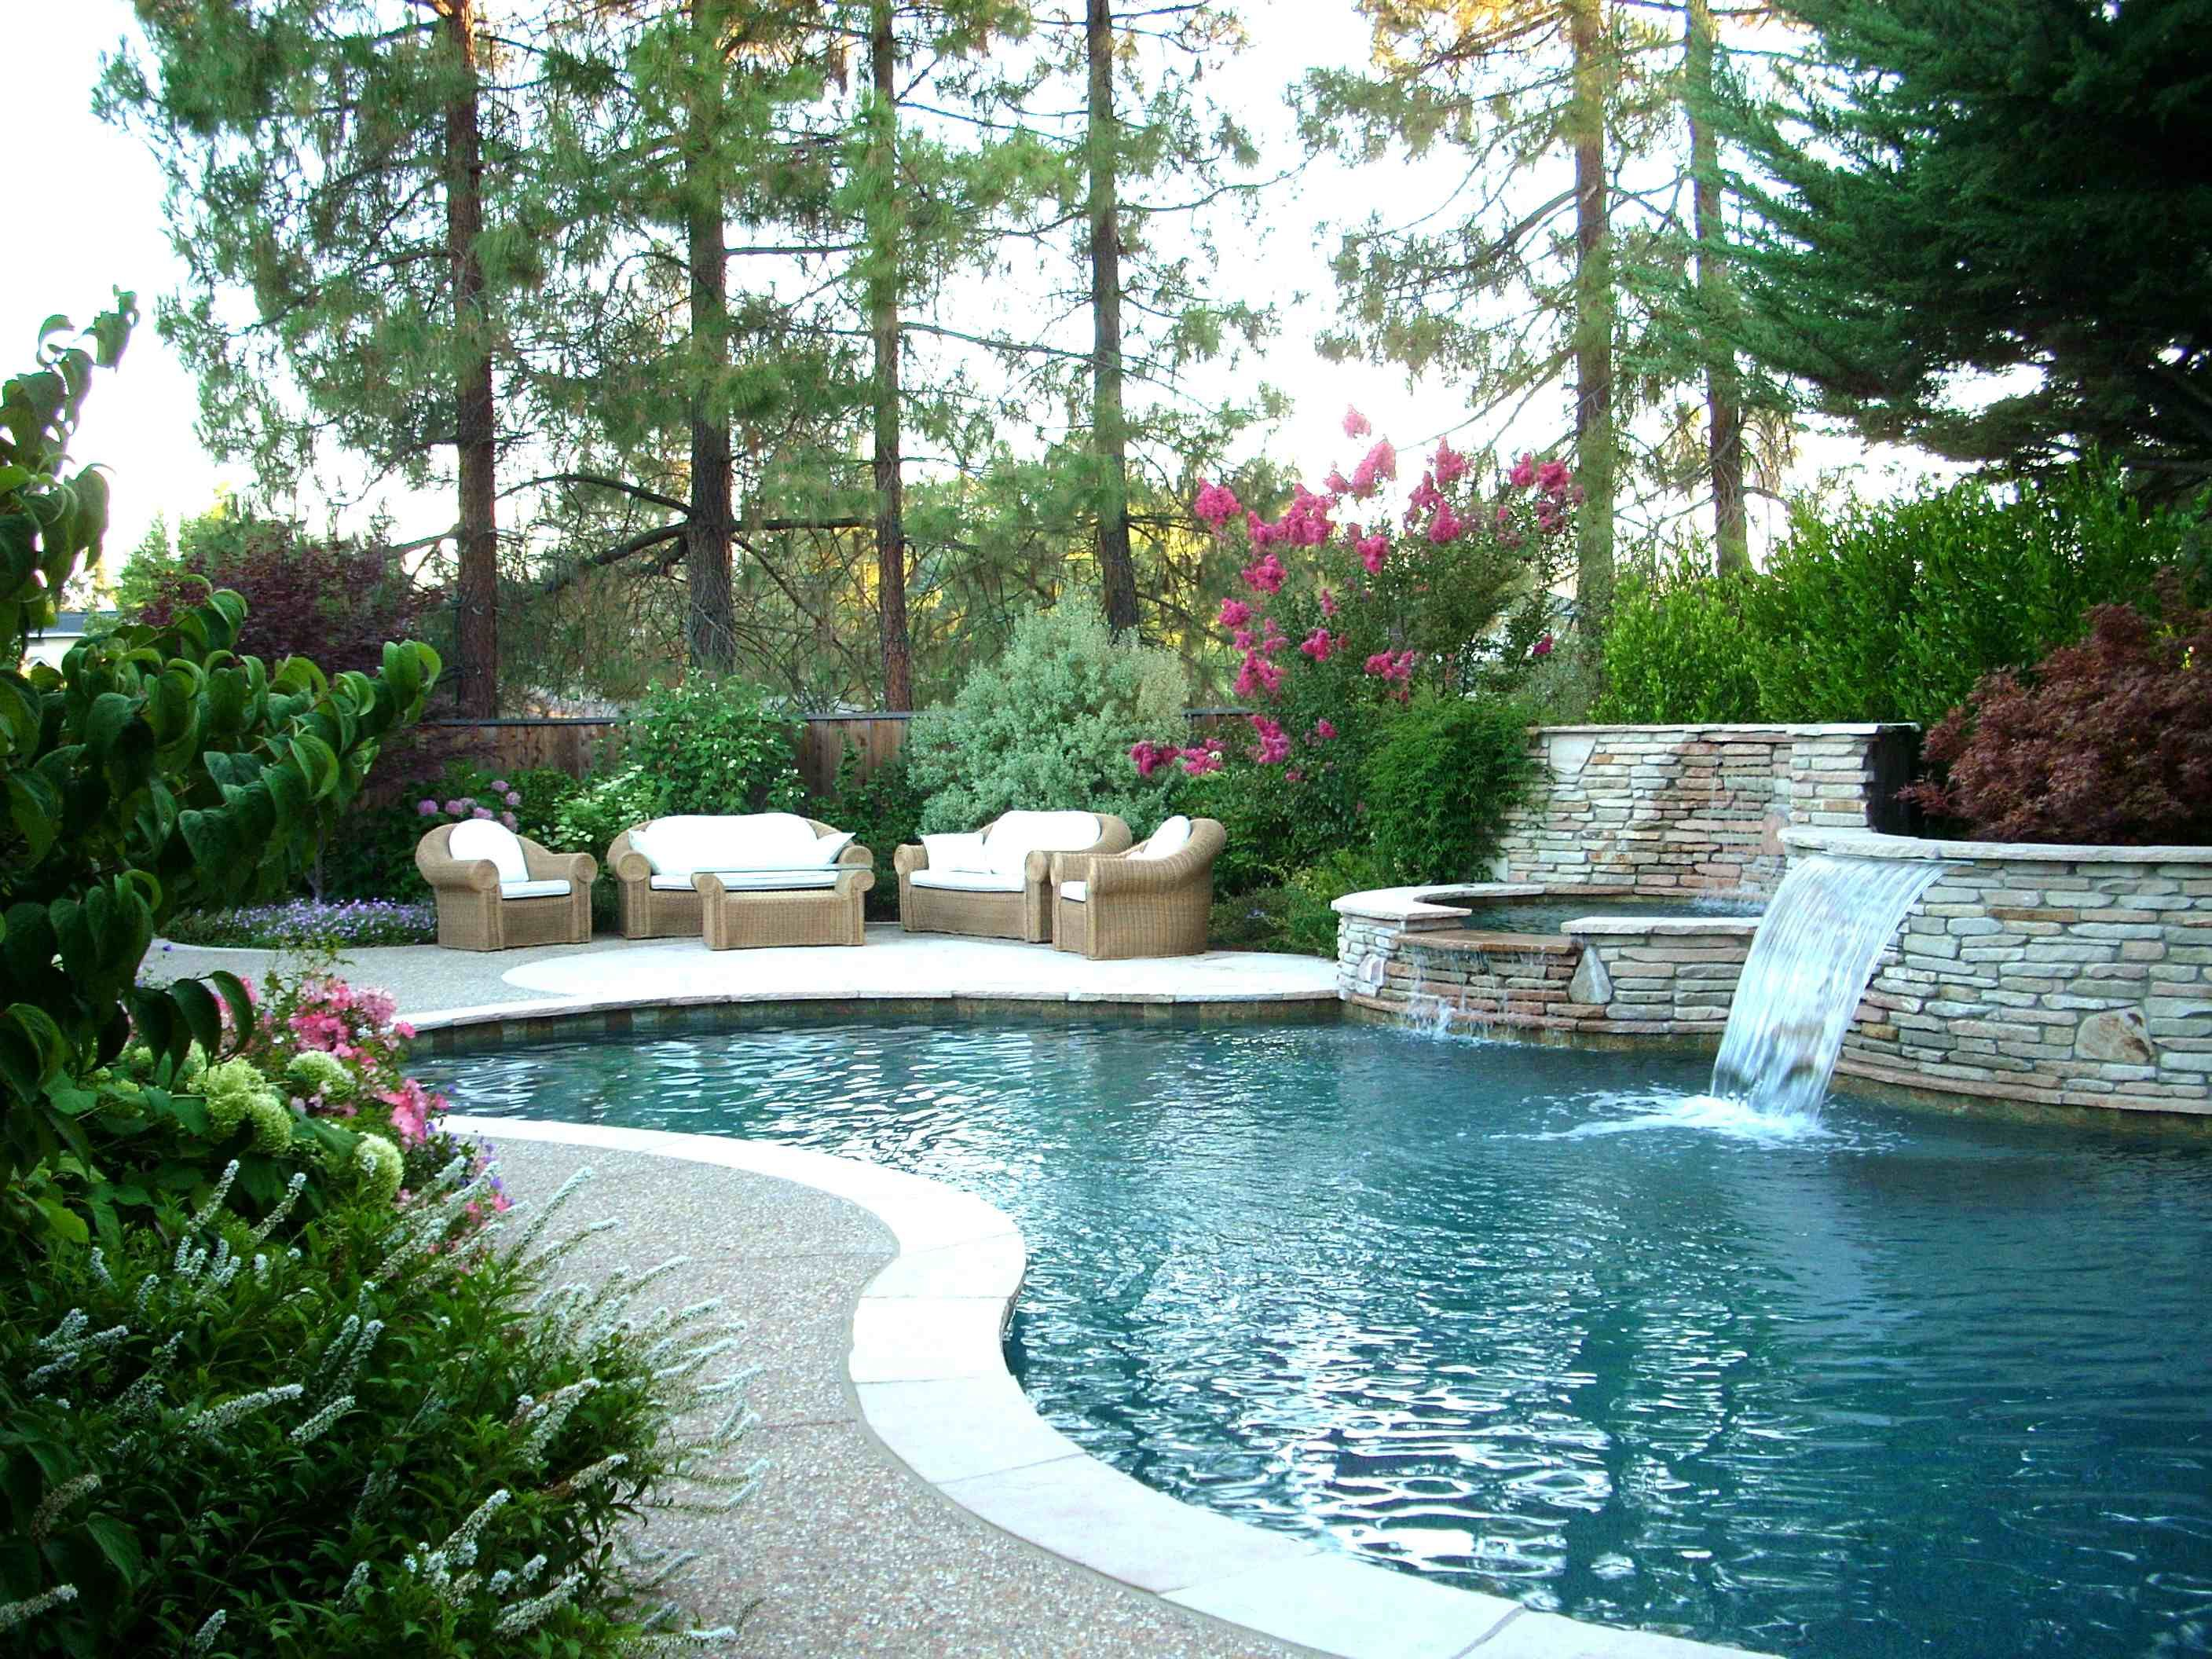 garden design ideas with pool photo - 2